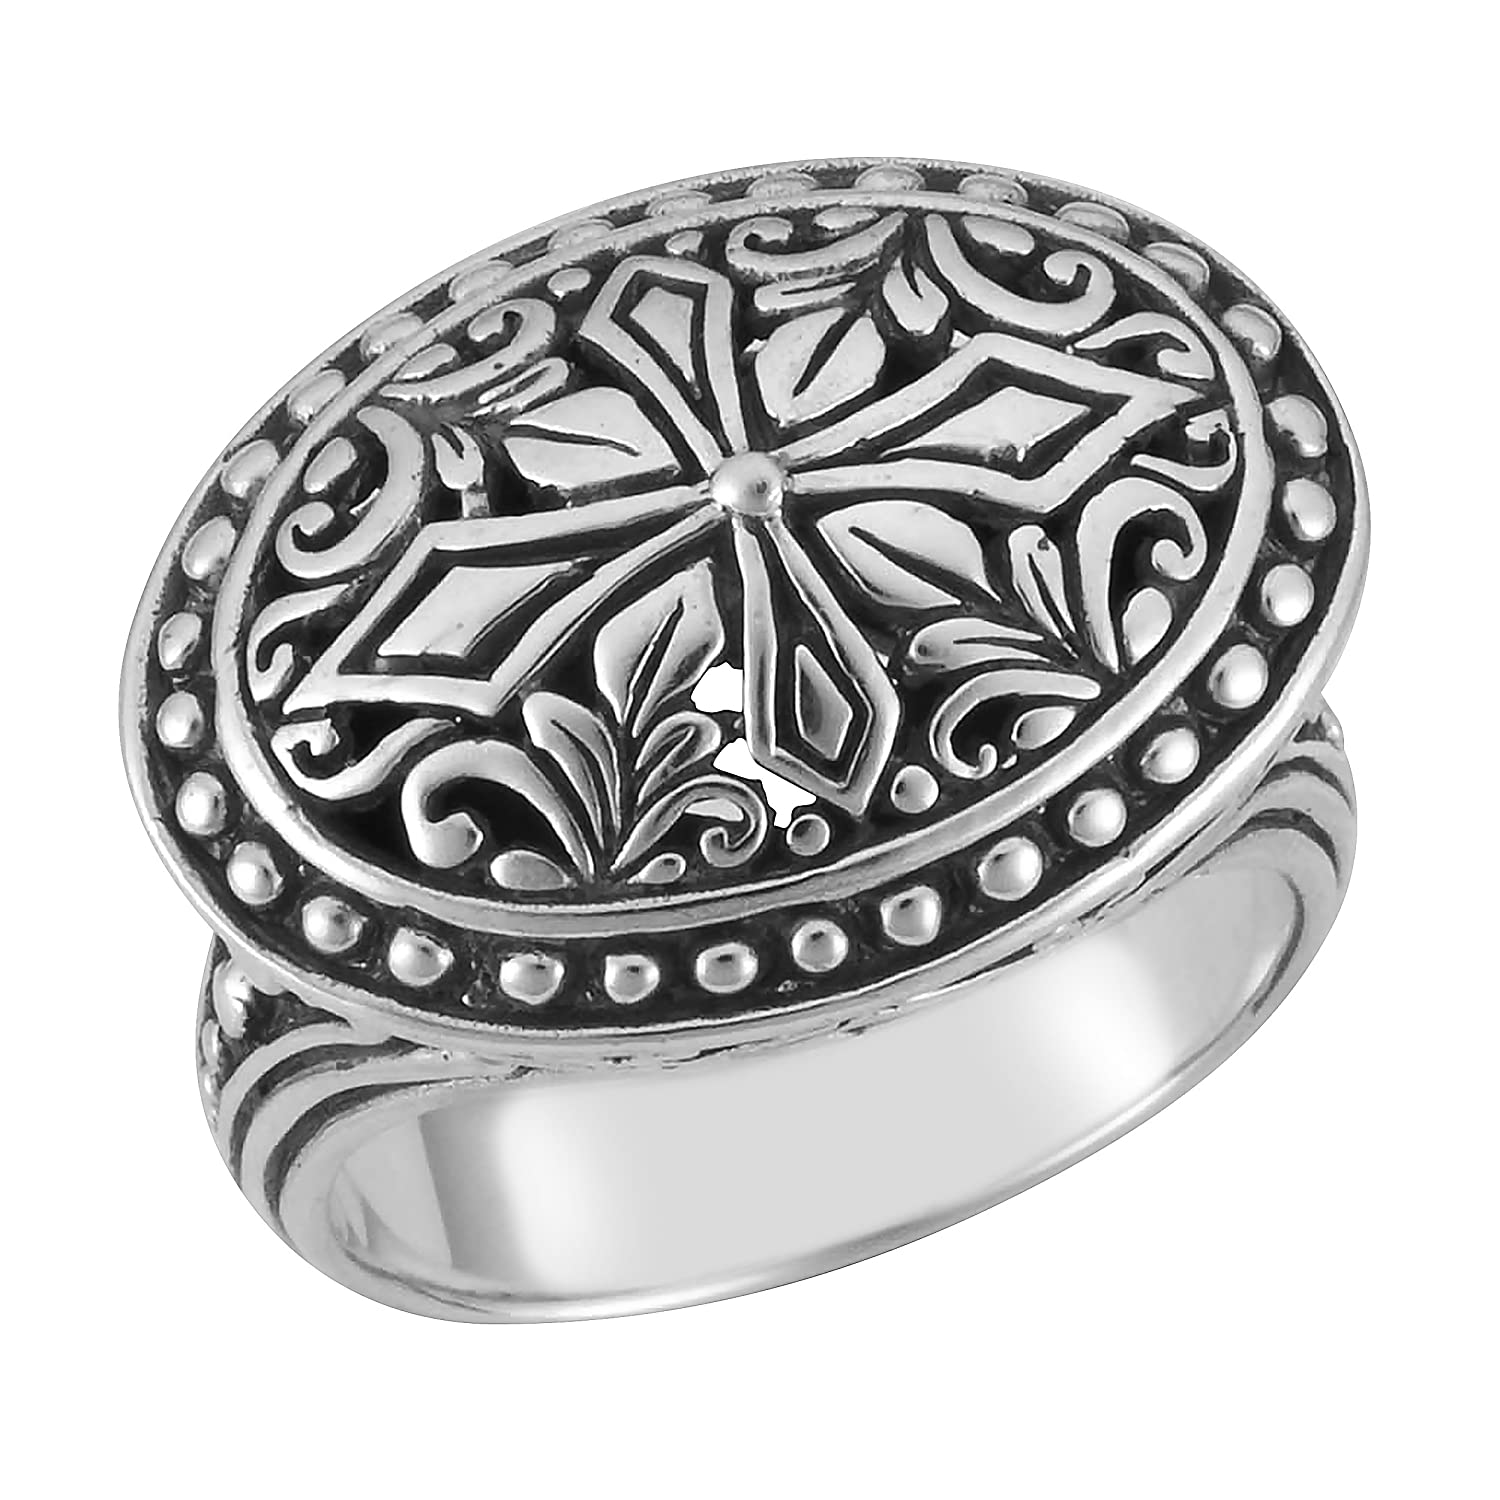 Artisanica Sterling Silver Handcrafted Bali Floral Motif Design Ring